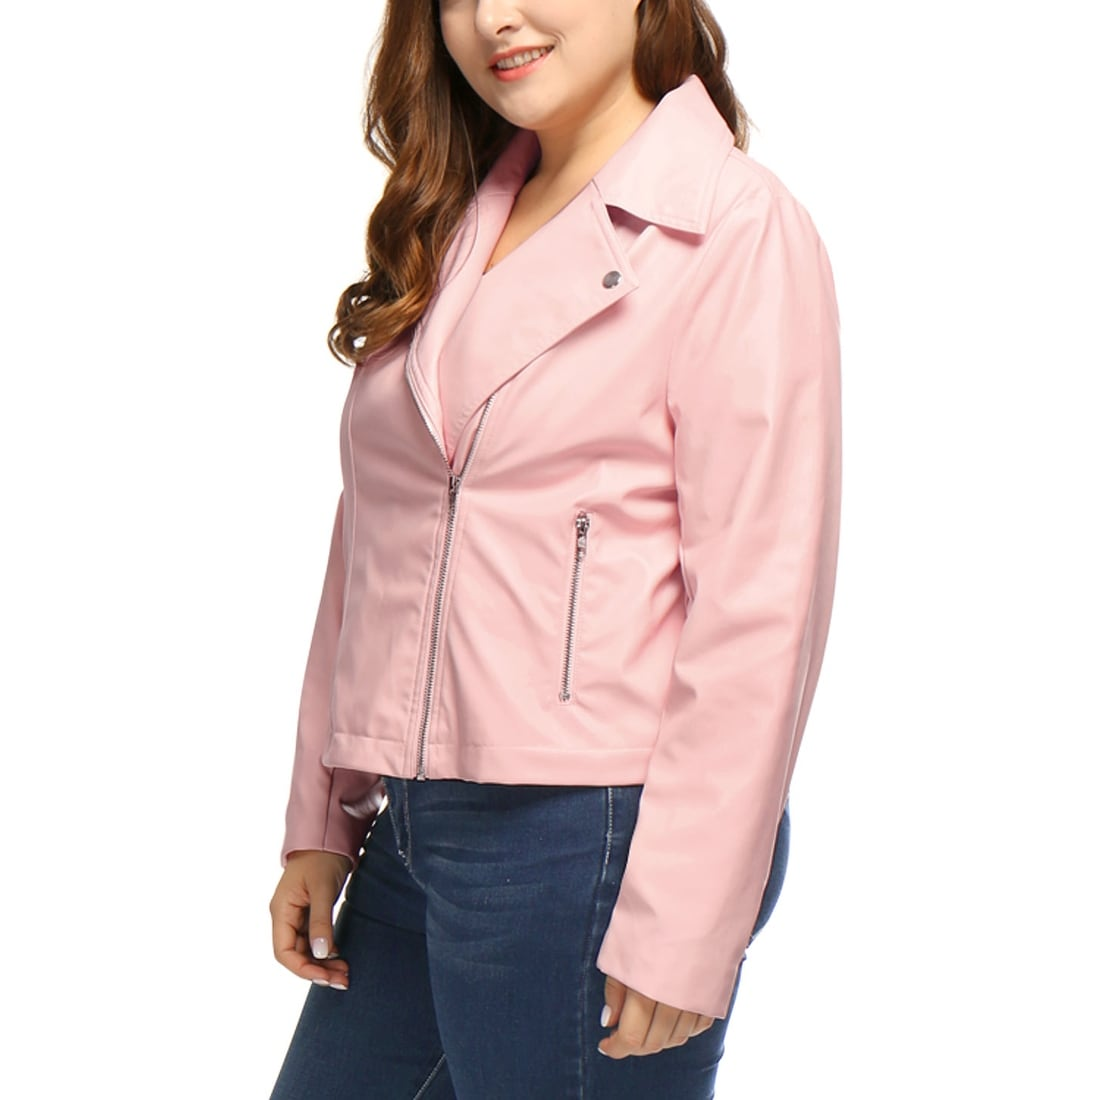 80bf8a1c04e Shop Allegra K Women s Plus Size Asymmetrical Zip Closed Front PU Leather  Moto Jacket - Pink - On Sale - Free Shipping Today - Overstock - 20834714